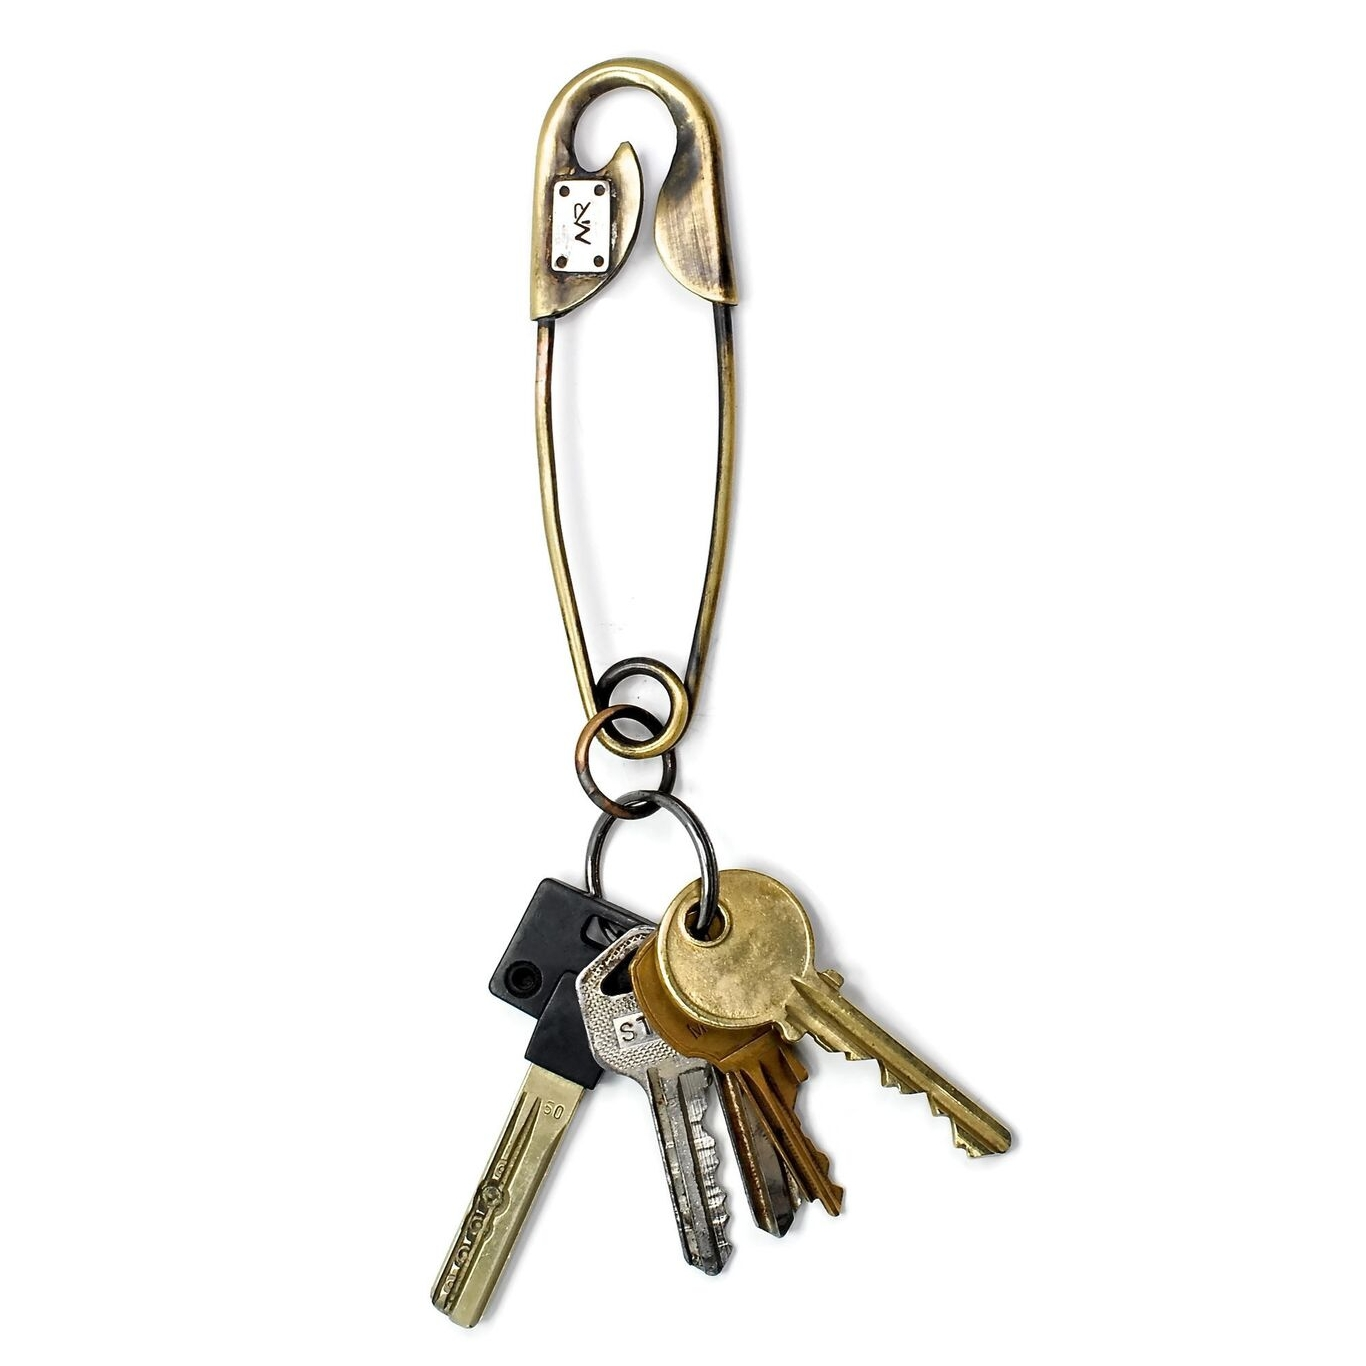 Safety_Pin_Key_Chain_In_Patina_Brass_and_Silver_1_preview.jpeg